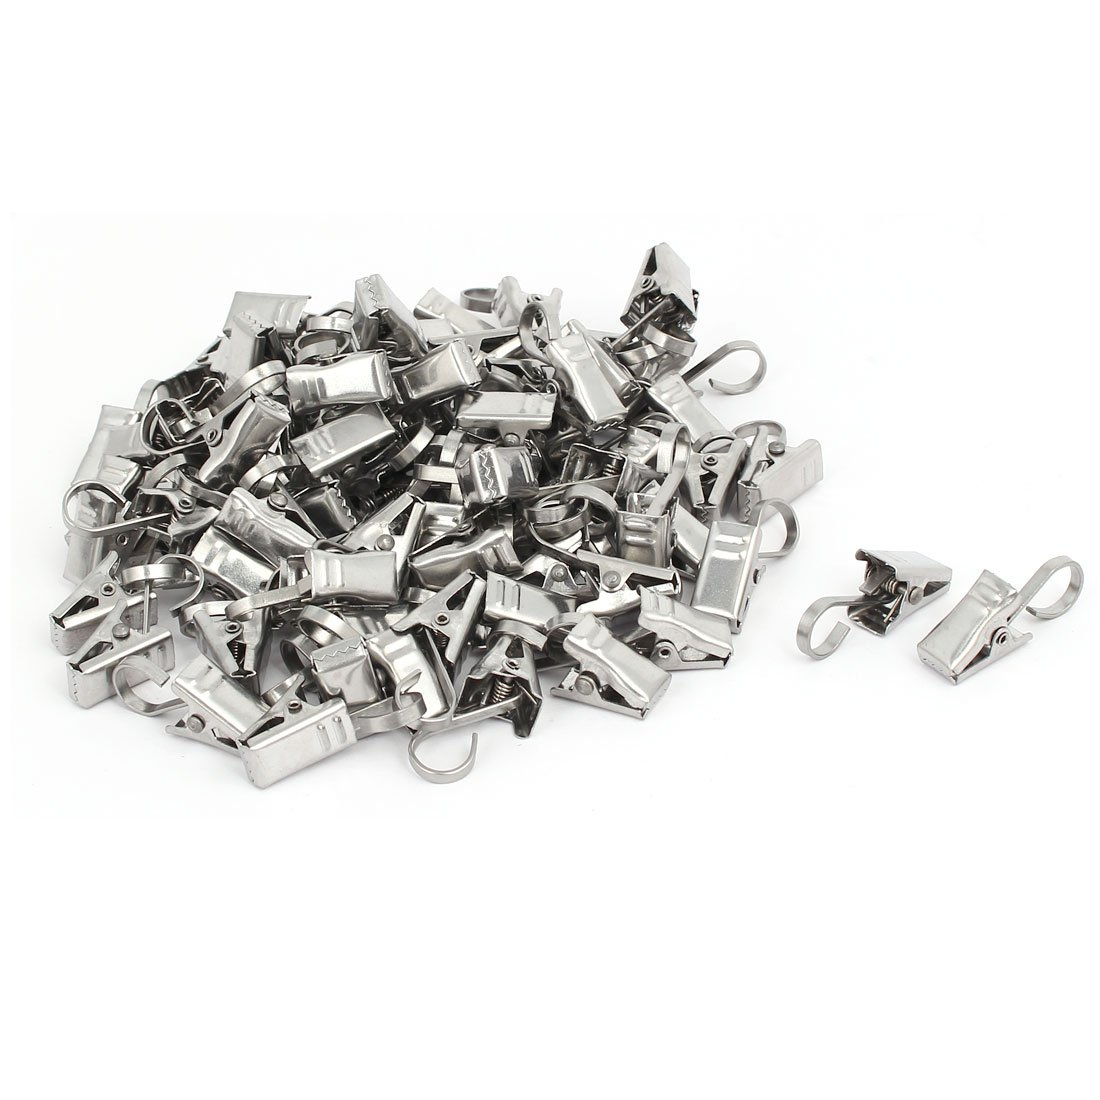 Photos Art Craft Display and Home Decoration Silver Tone 30 Pcs a18081500ux0685 uxcell Curtain Clips with Hooks Metal 1 Inch Clip Length for Drapery